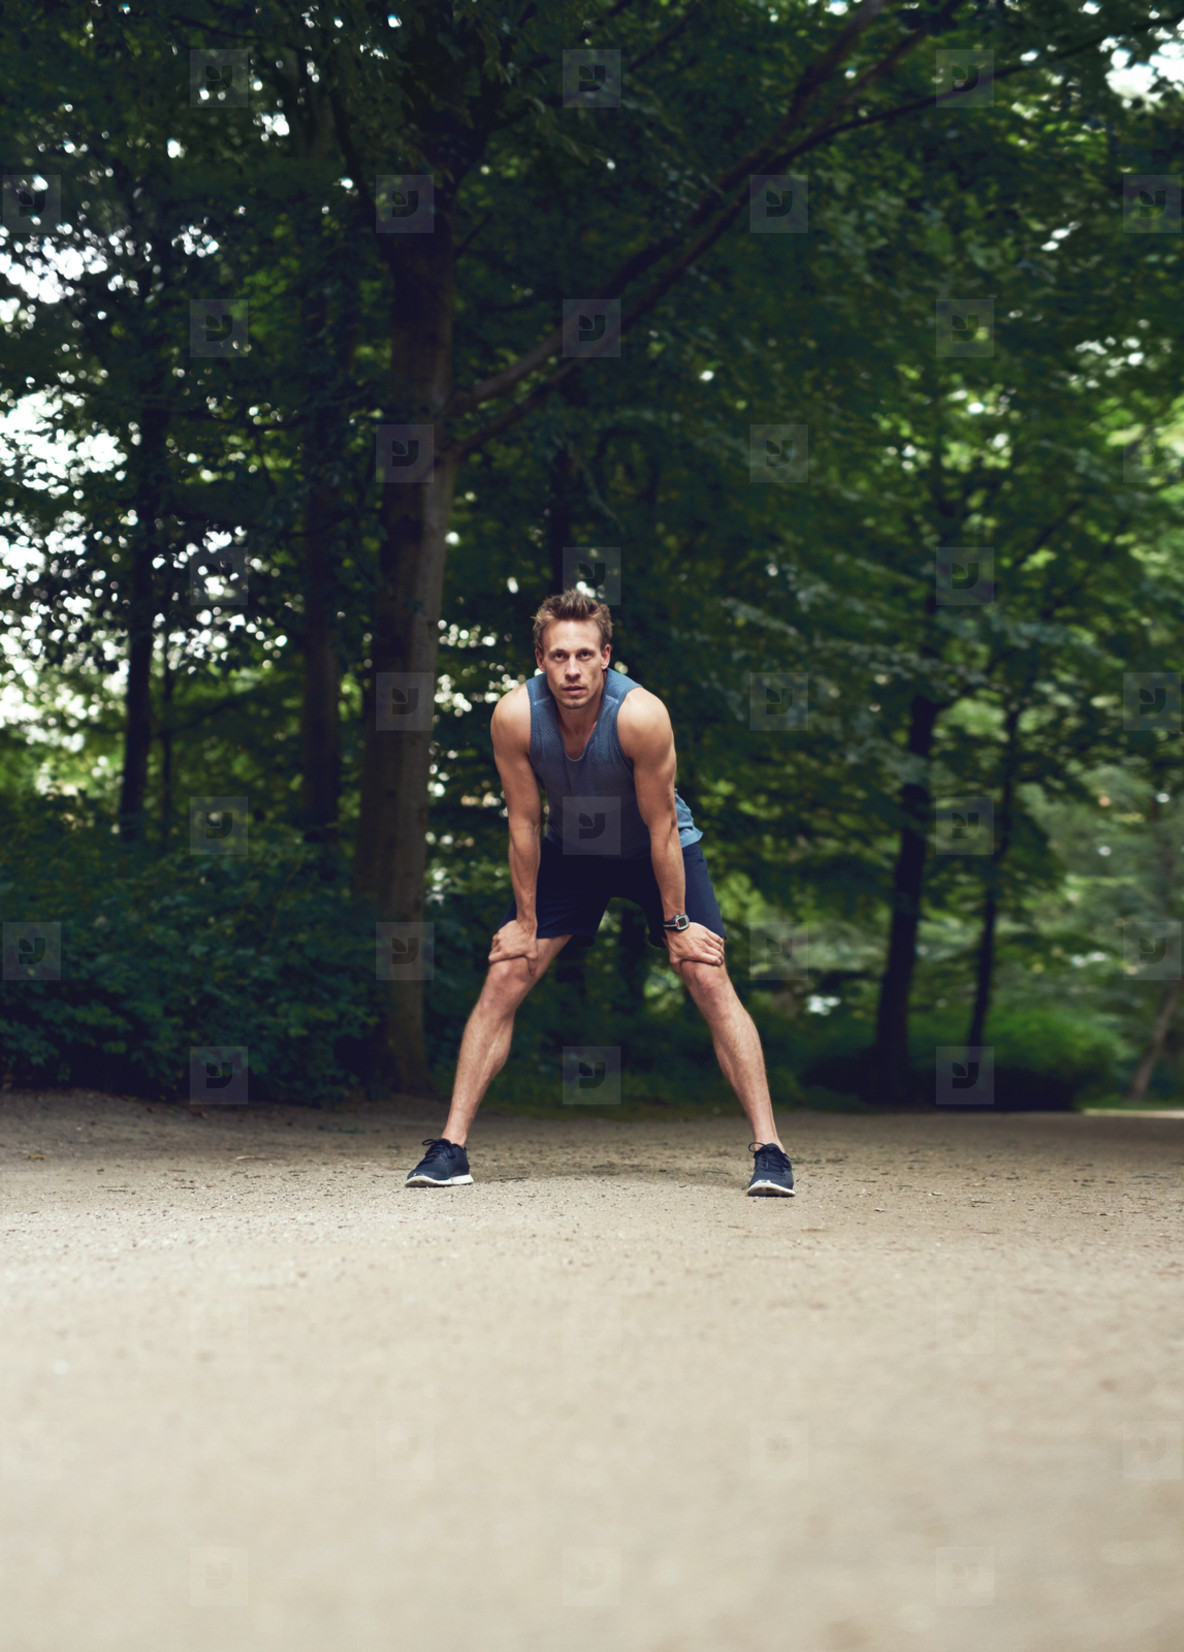 Athletic Man Resting After an Outdoor Running